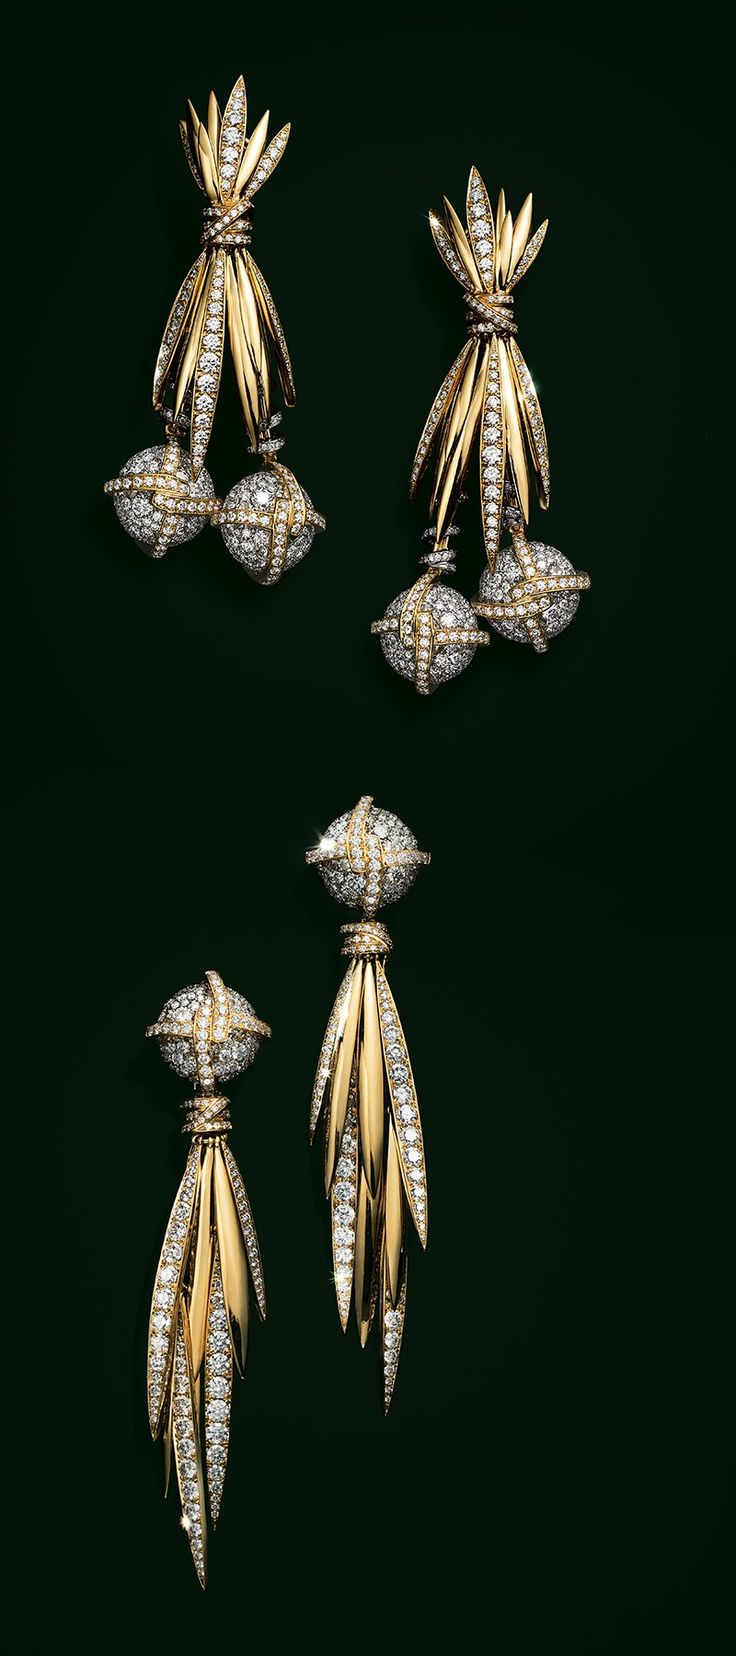 Earrings in platinum and 18k gold with diamonds.